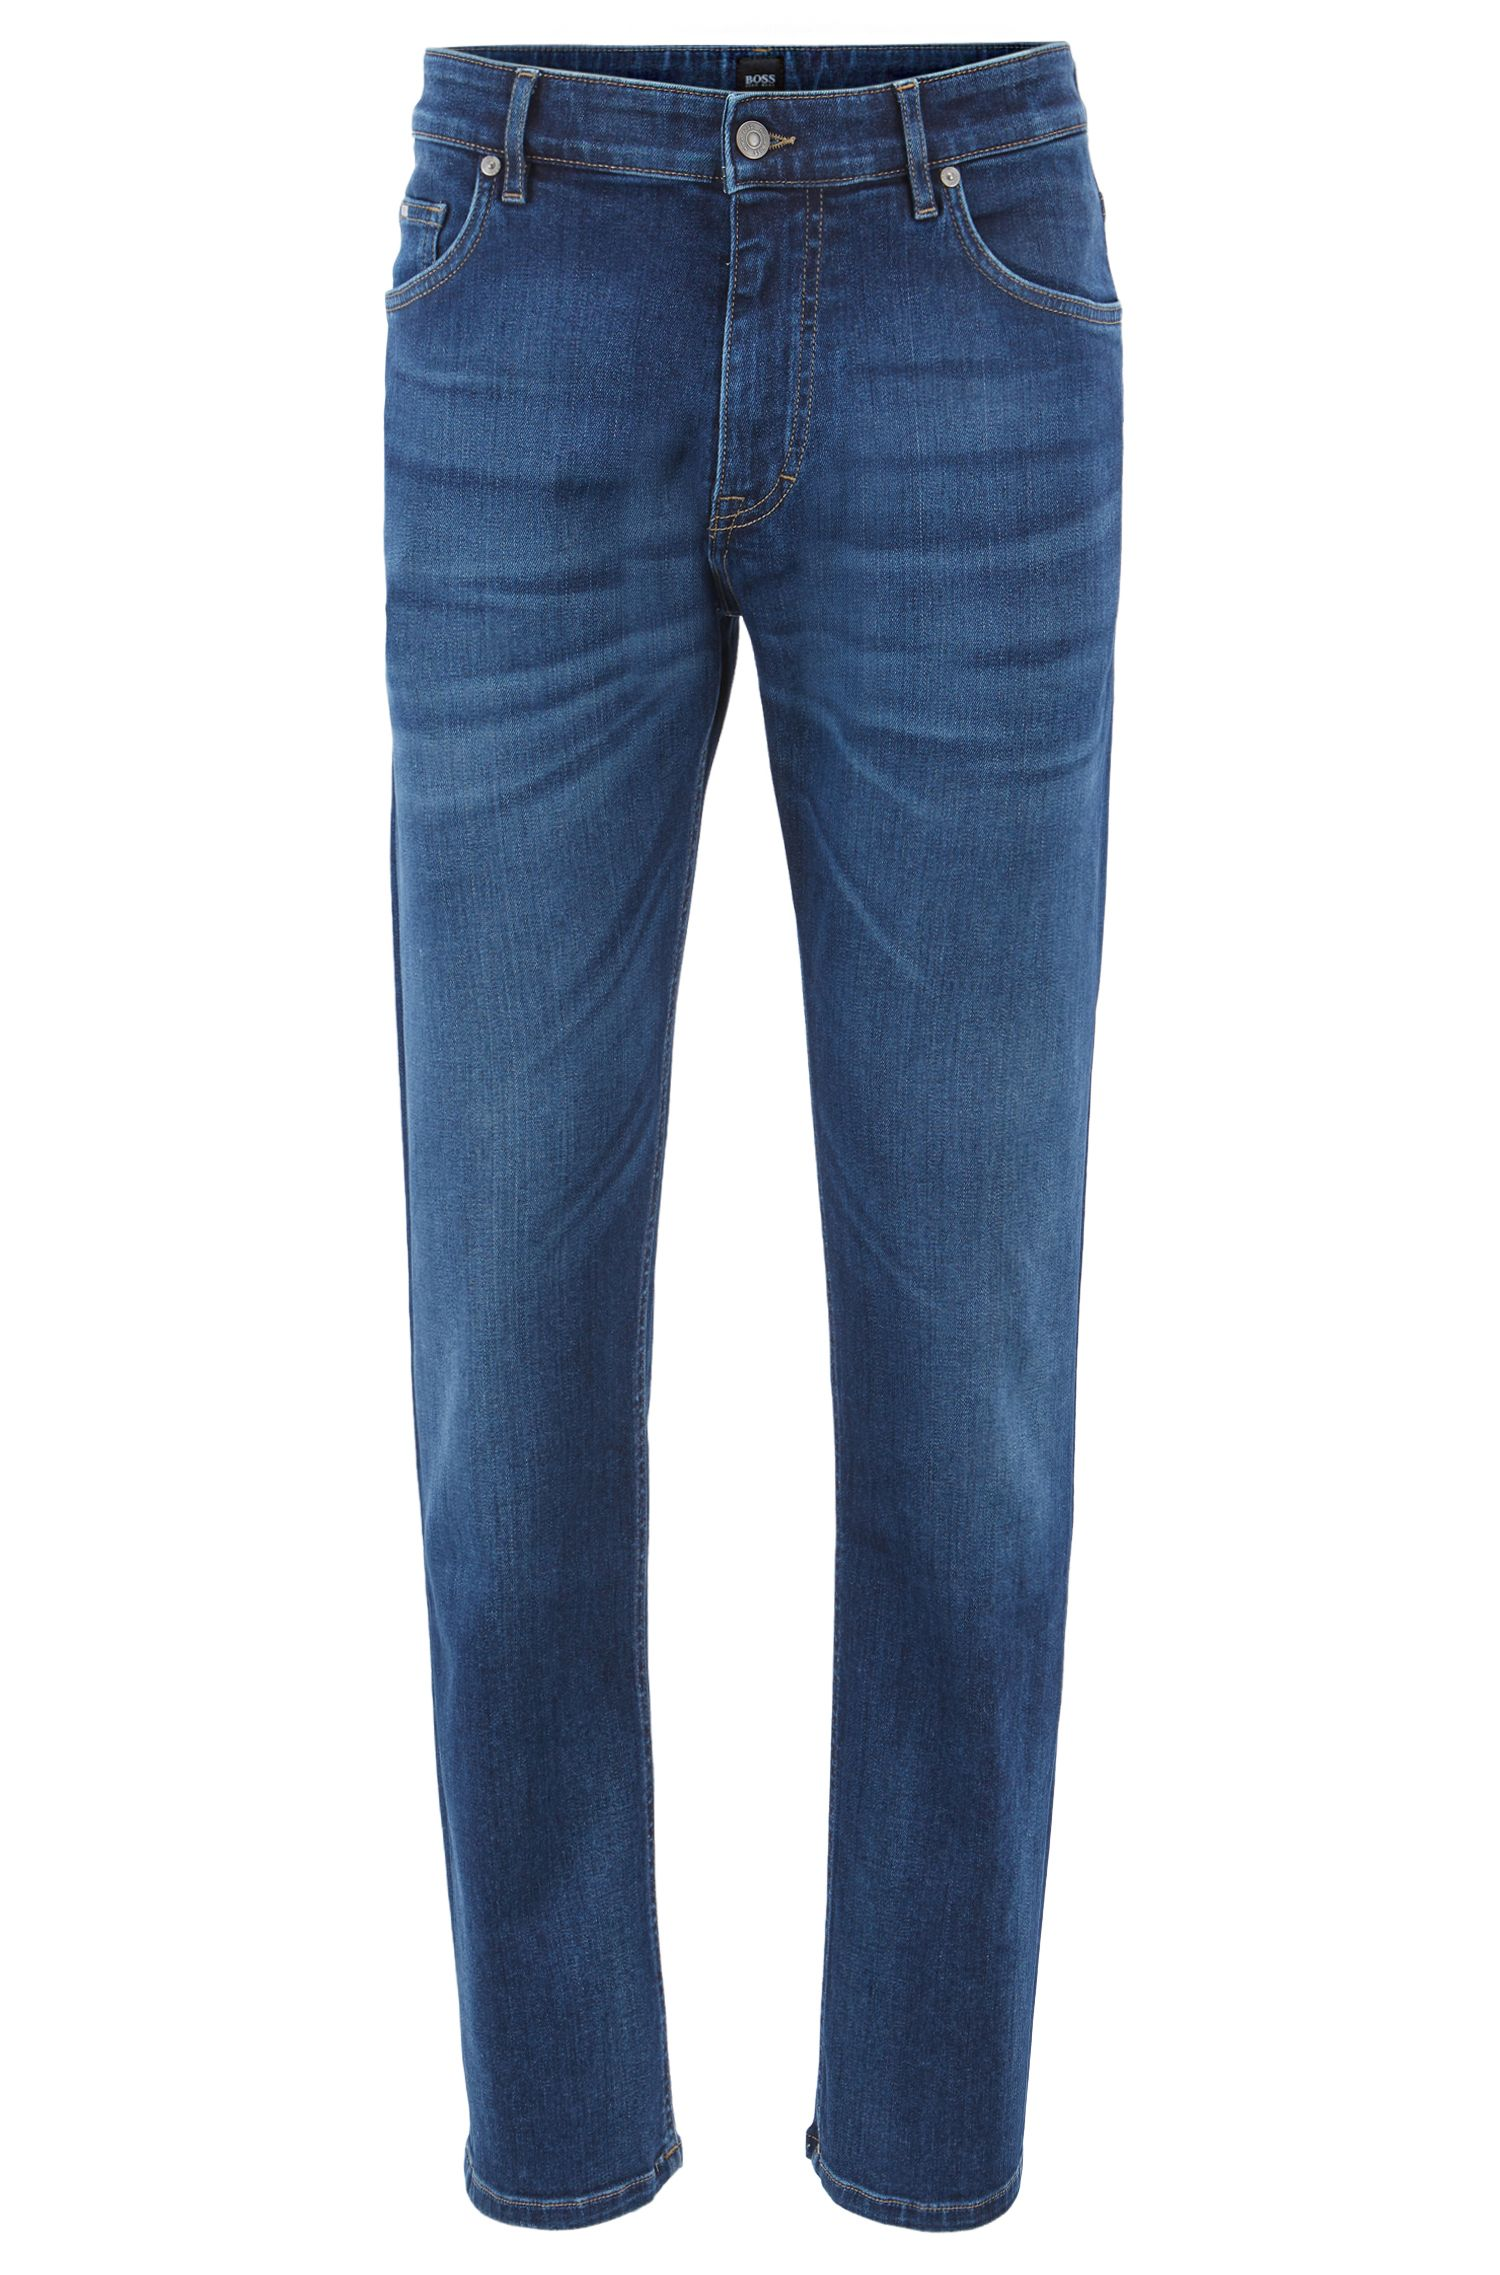 Vaqueros relaxed fit en denim elástico italiano azul brillante, Azul